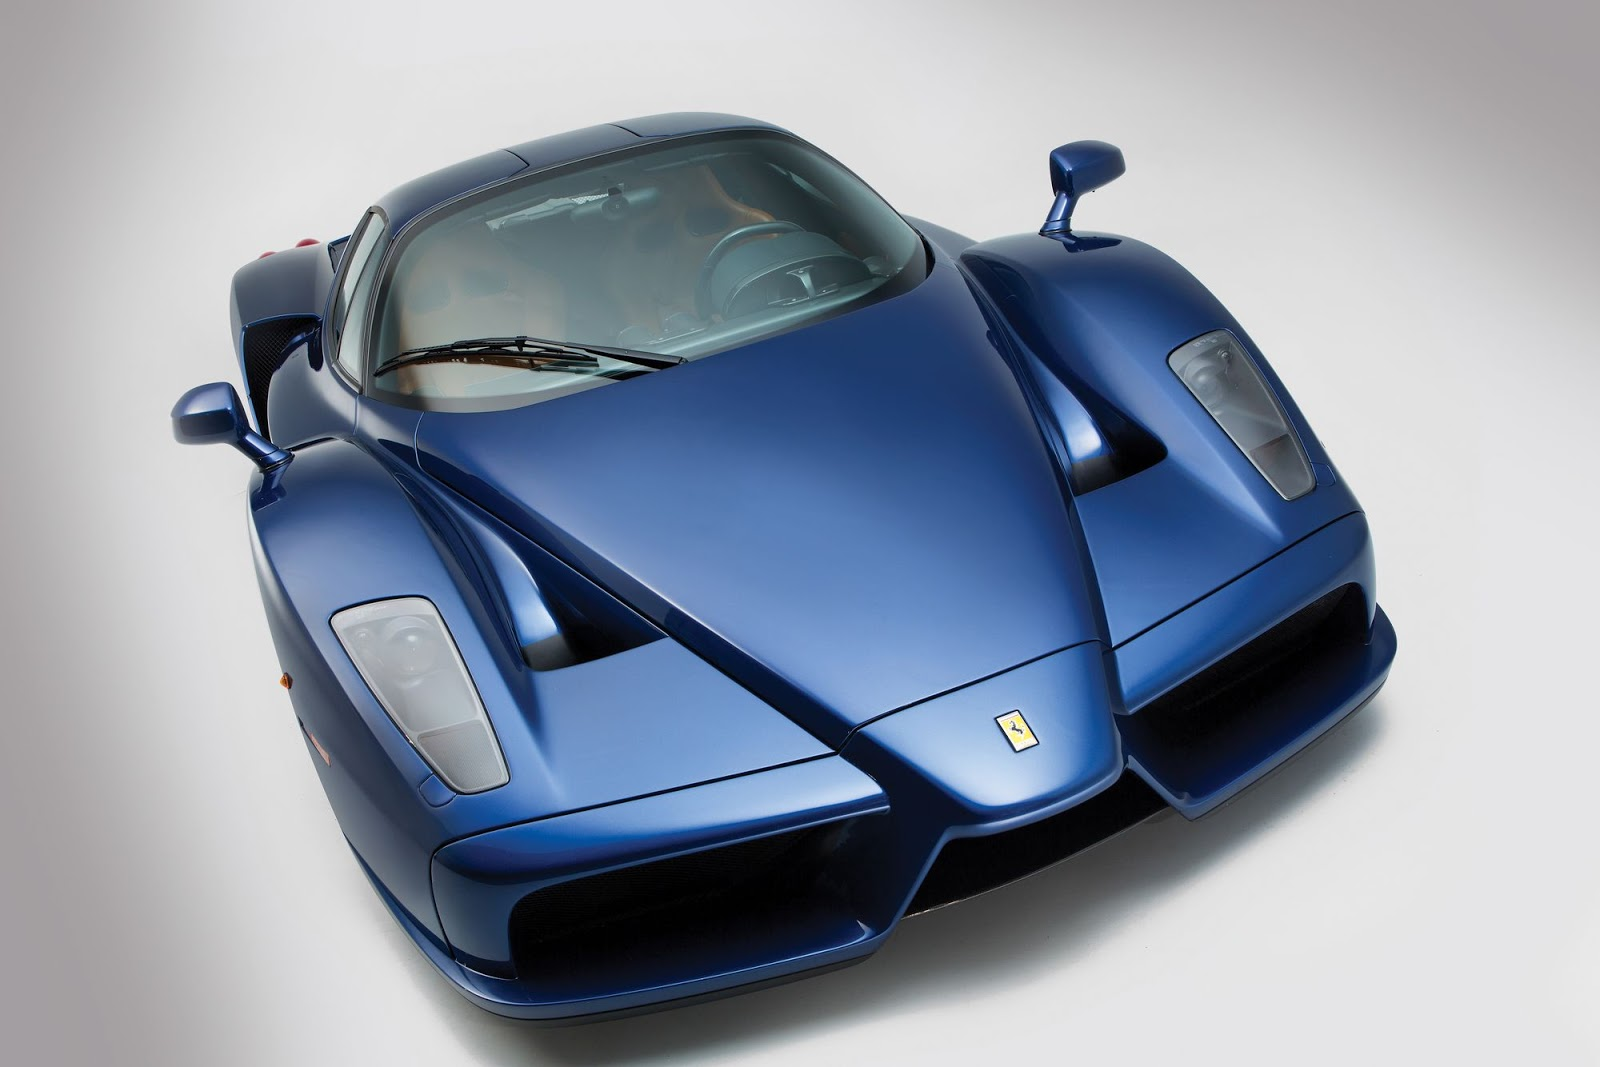 Blue Ferrari Enzo in auction (3)